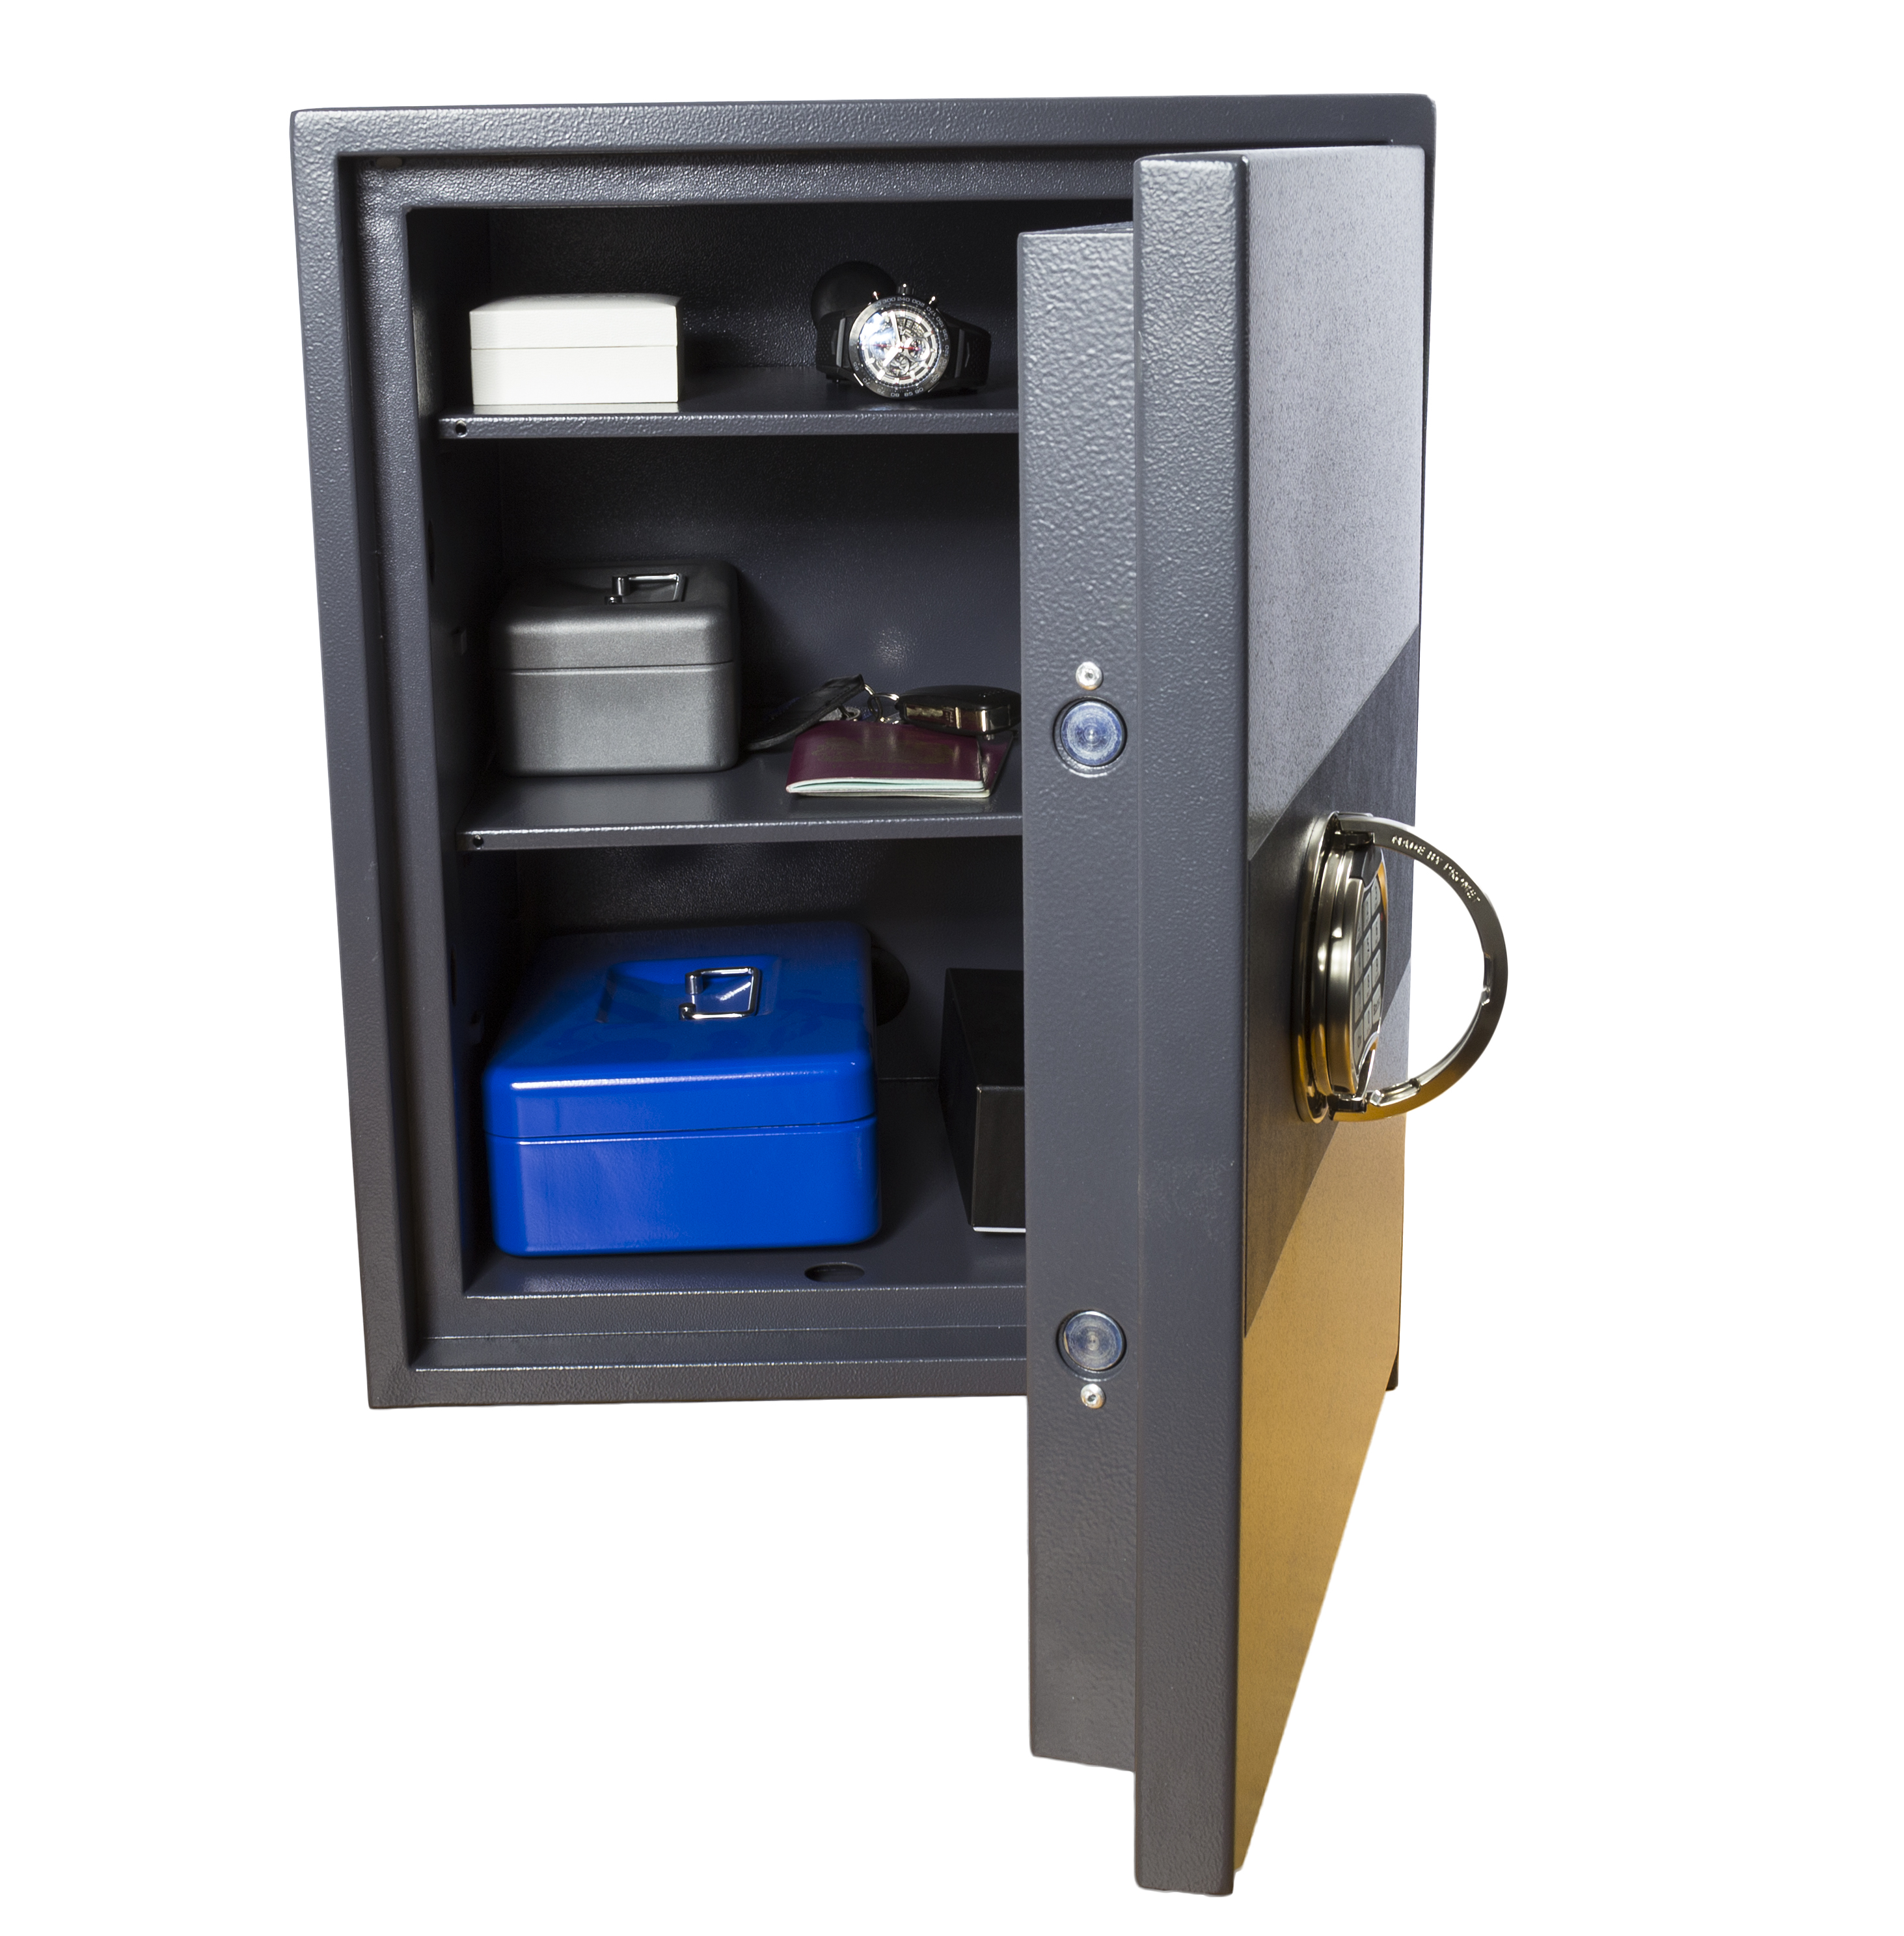 Large security safe open